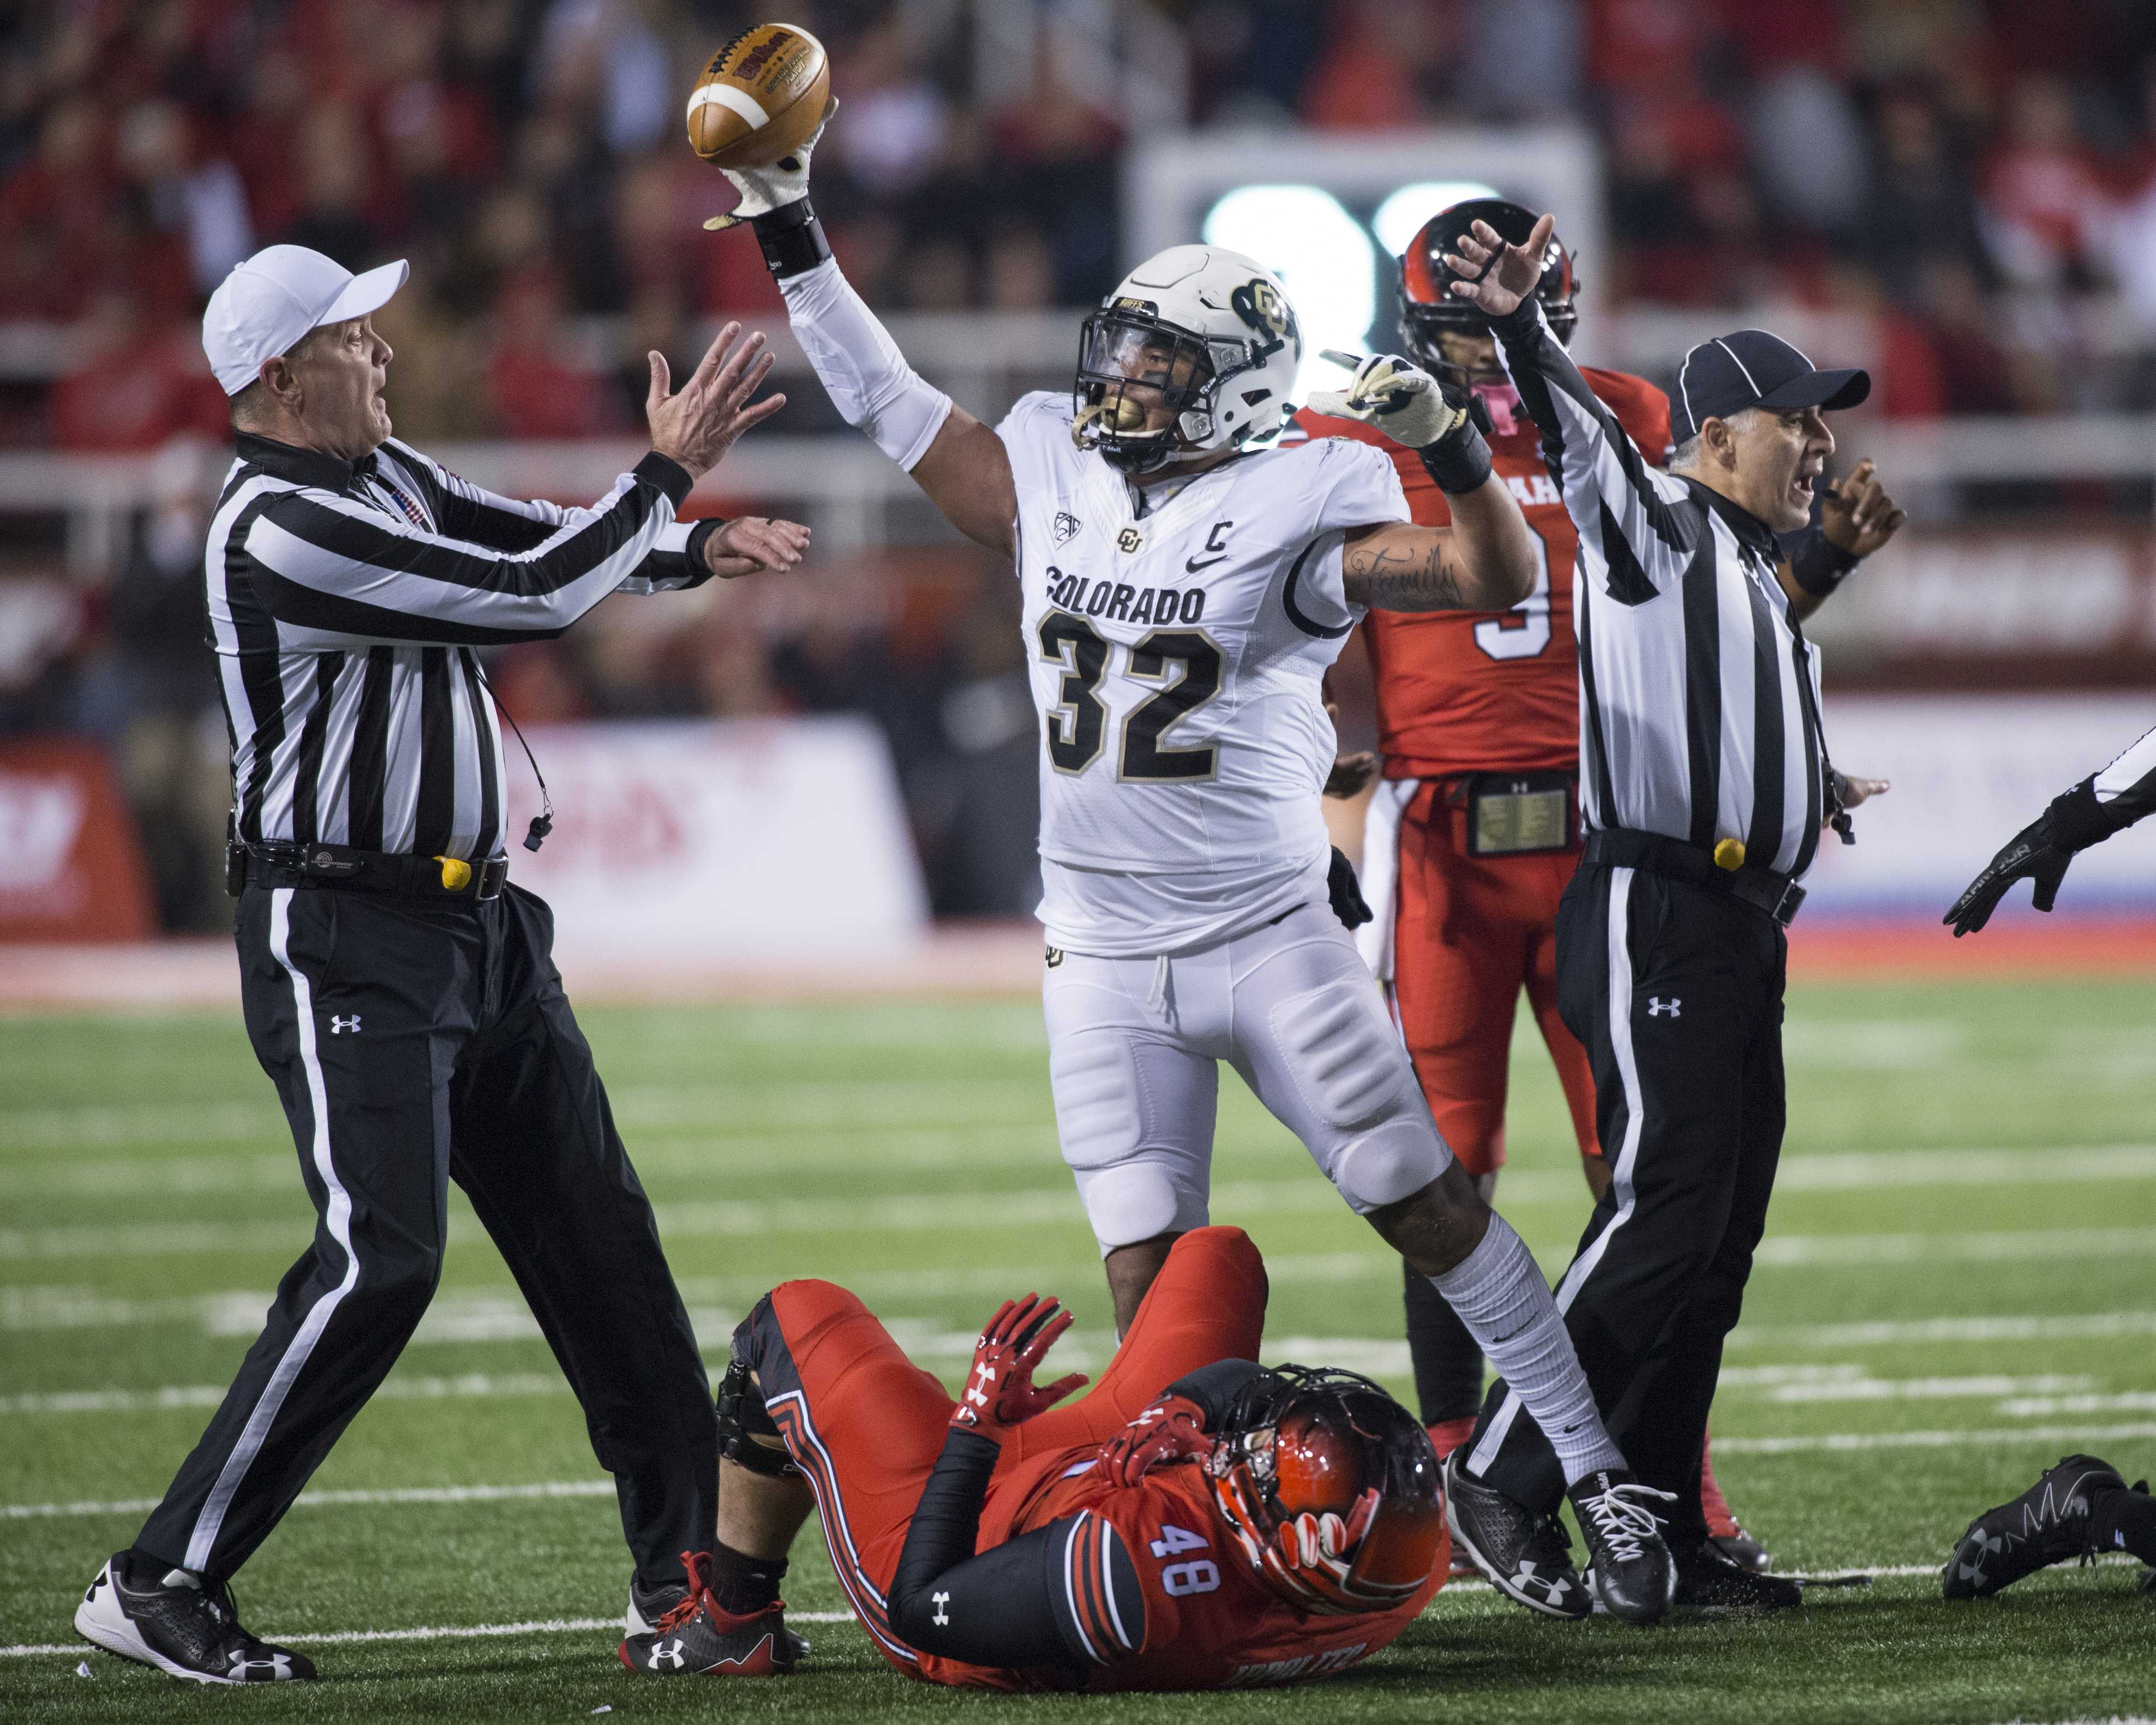 University of Colorado junior inside linebacker Rick Gamboa (32) celebrates a recovered fumble before the call was overturned by the referee during an NCAA Football game vs. The University of Utah Utes at Rice Eccles Stadium in Salt Lake City, Utah on Saturday, Nov. 25, 2017  (Photo by Kiffer Creveling | The Daily Utah Chronicle)